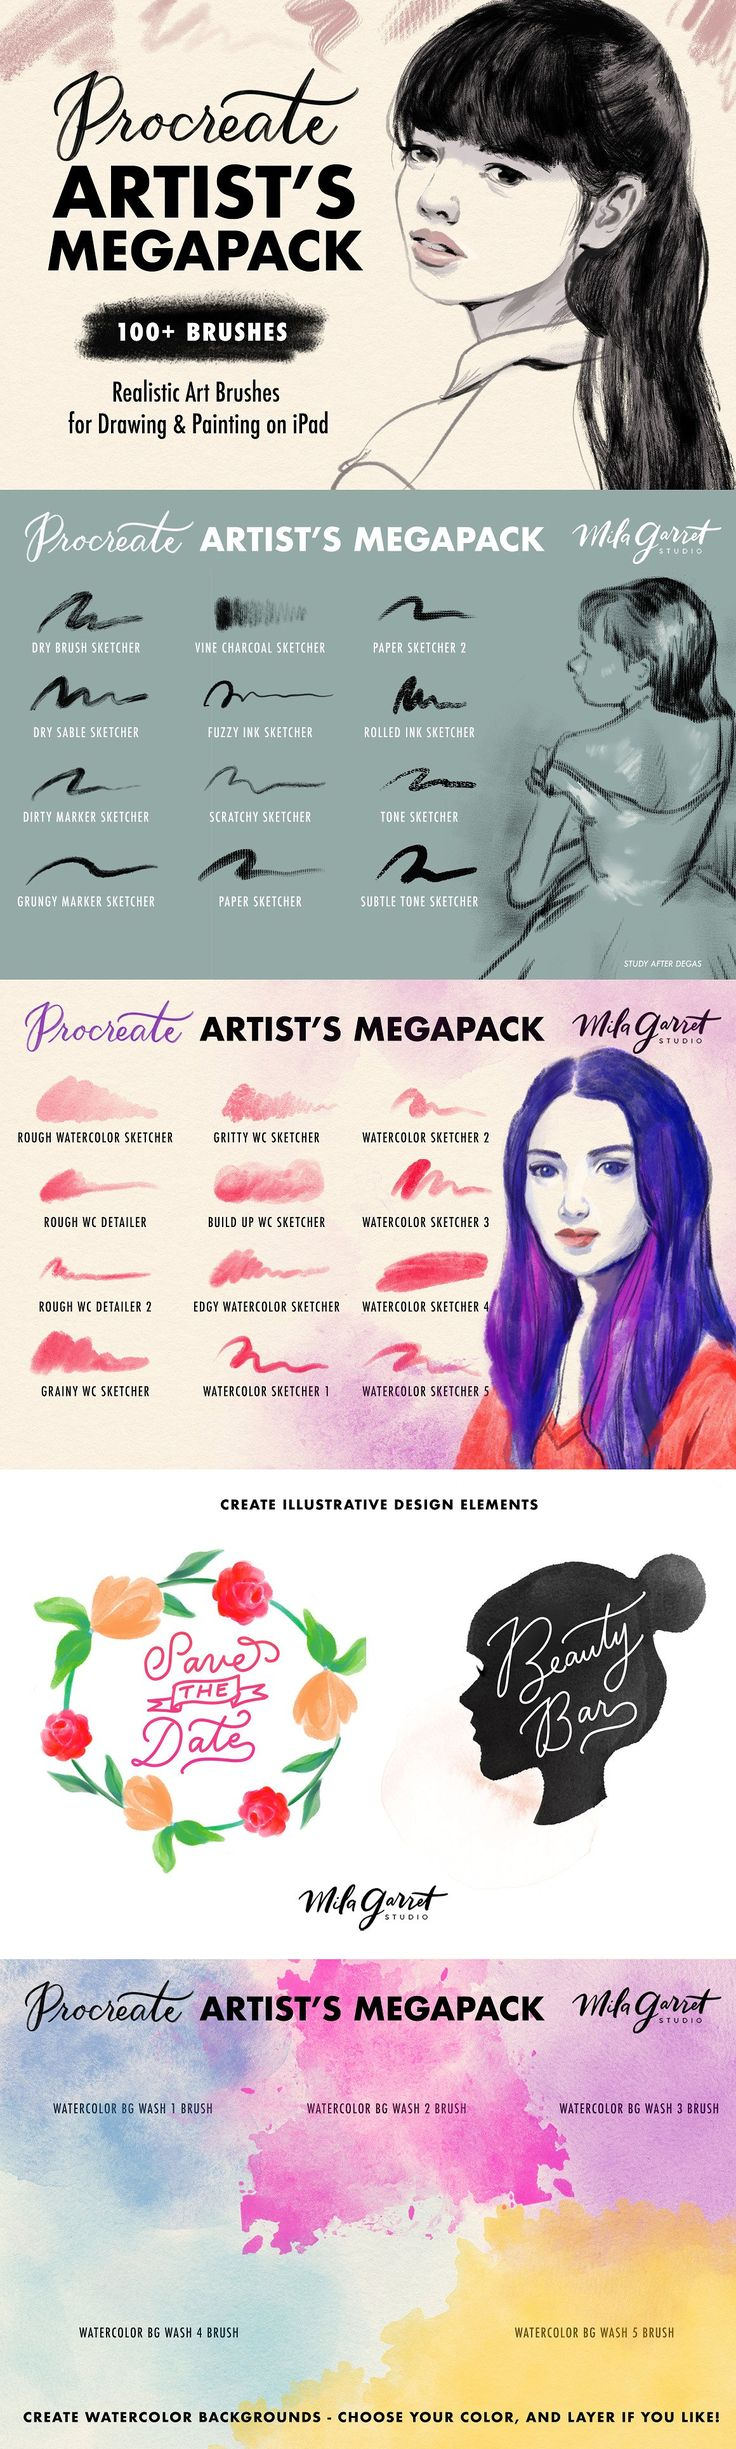 Procreate Brushes: Artist's Megapack - Brushes - Hey artists and art lovers! I'm very excited to introduce you to my Artist's MEGAPACK for Procreate and iPad Pro. This pack contains over 100 custom Procreate brushes for drawing and painting, featuring realistic textures like watercolor, charcoal, ink, oil paint, and more.